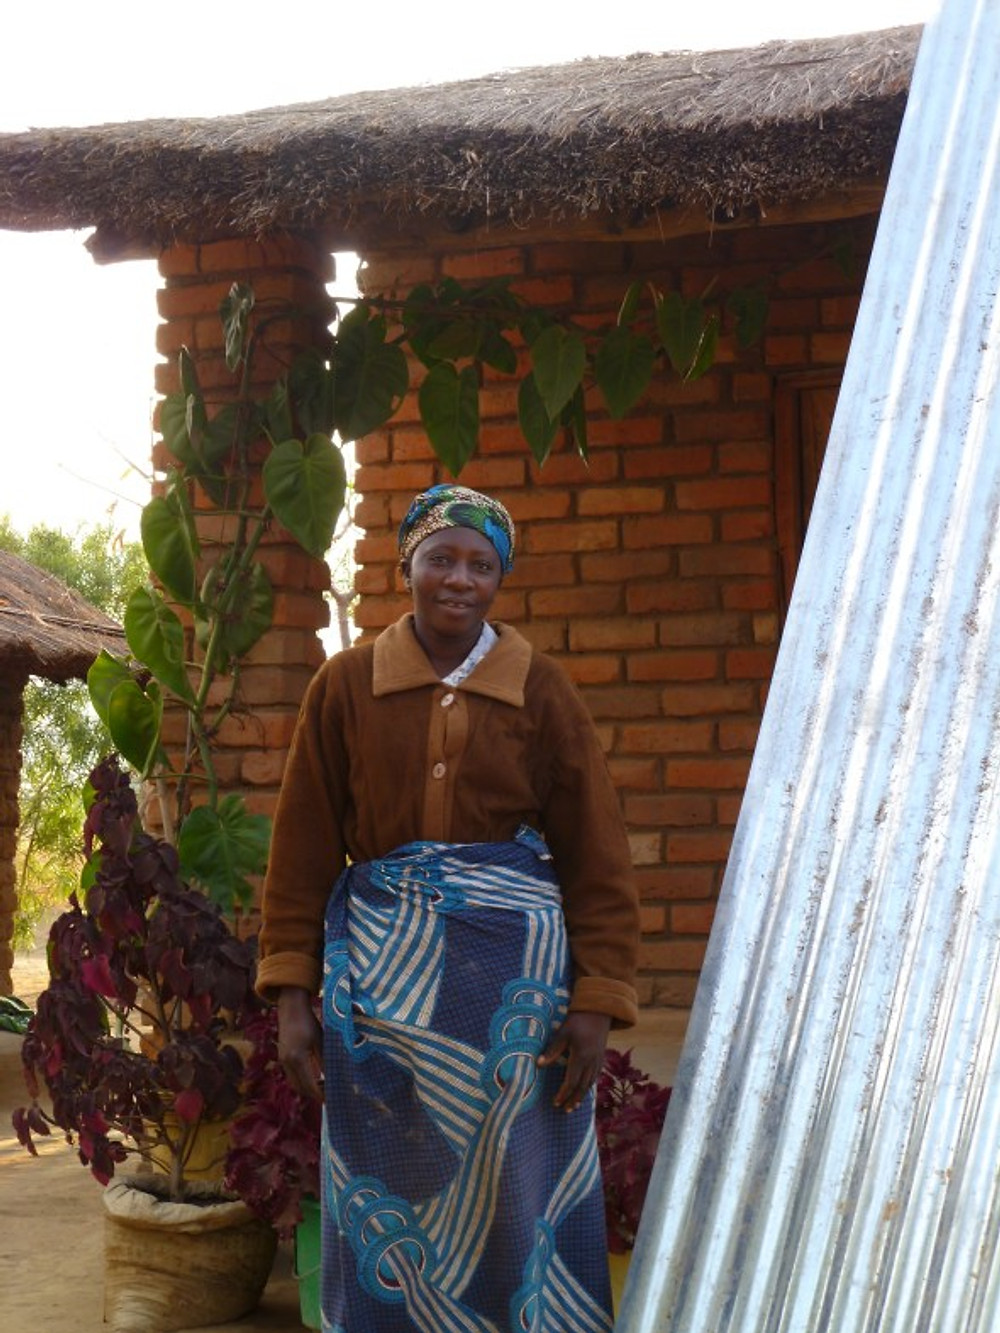 Steria in 2011. Using the profit from her donut business, she was buying iron roofing sheets one at a time. Her roof was thatched with grass at the time.